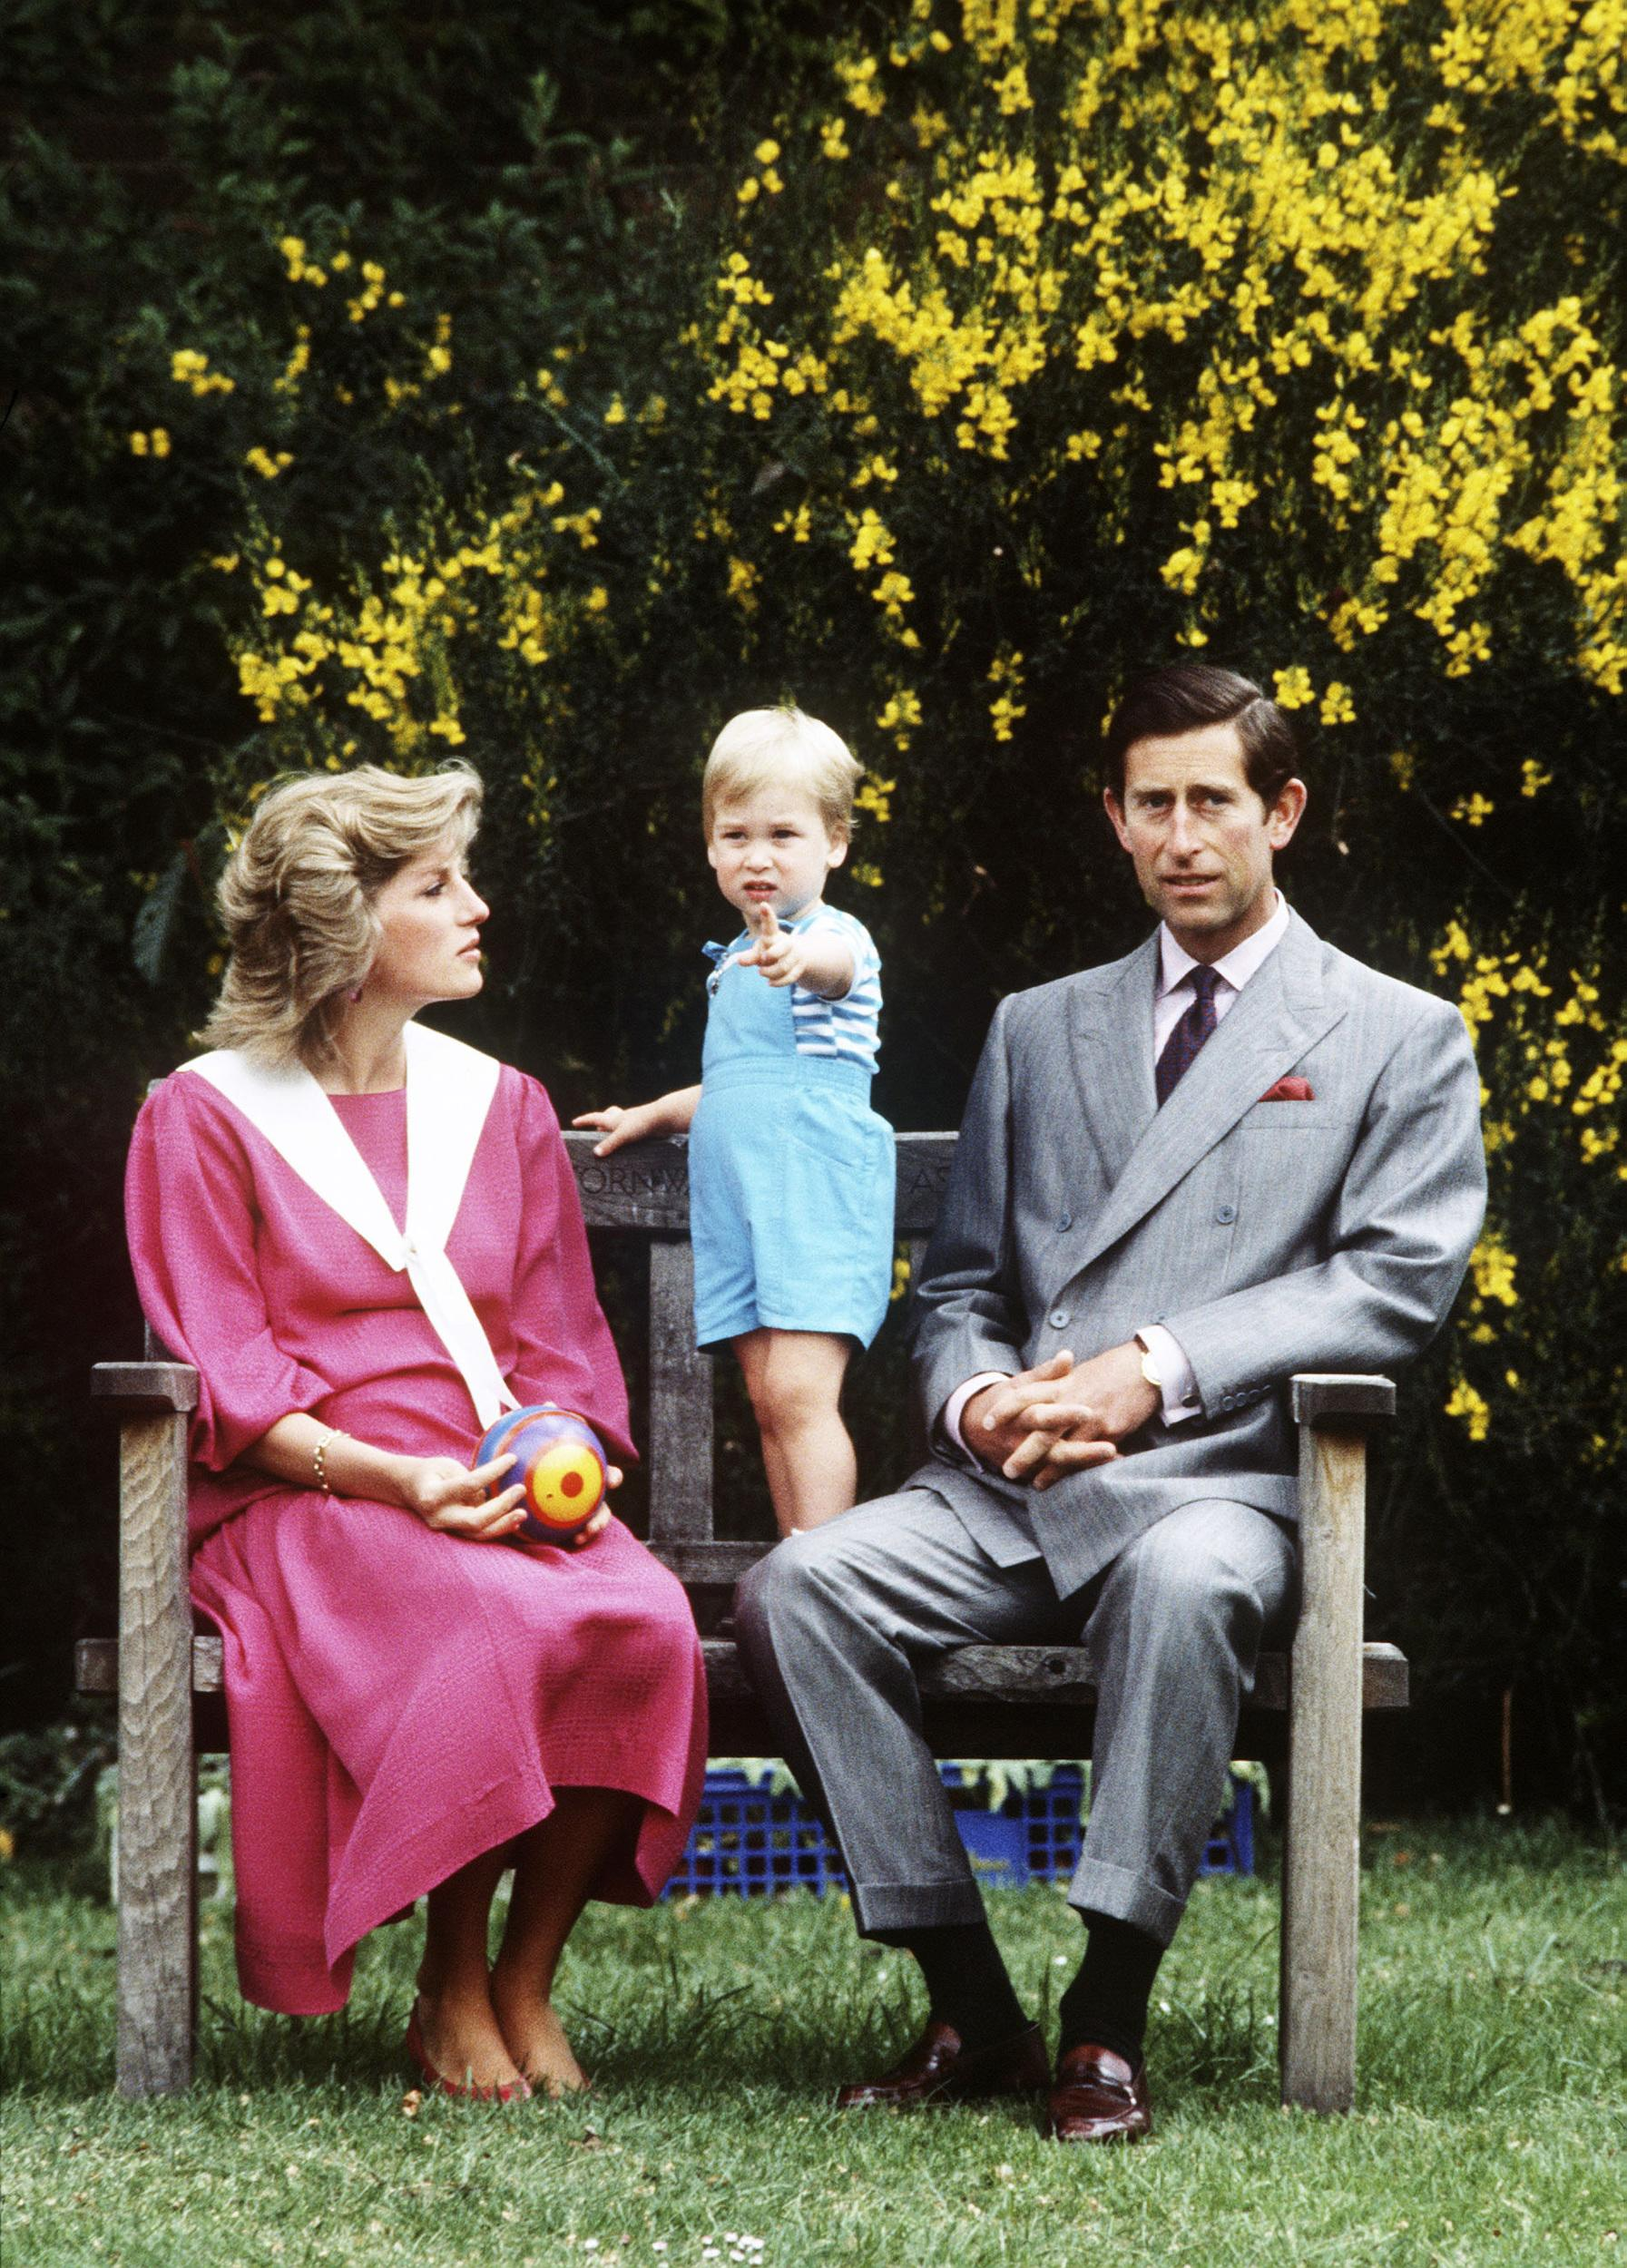 LONDON - JUNE 12:  Prince Charles and Princess Diana pose with their son, Prince William, for his second birthday (born 21 June 1982) in their garden at their Kensington Palace home June 12, 1984 in London, England.  (Photo by Anwar Hussein/WireImage)